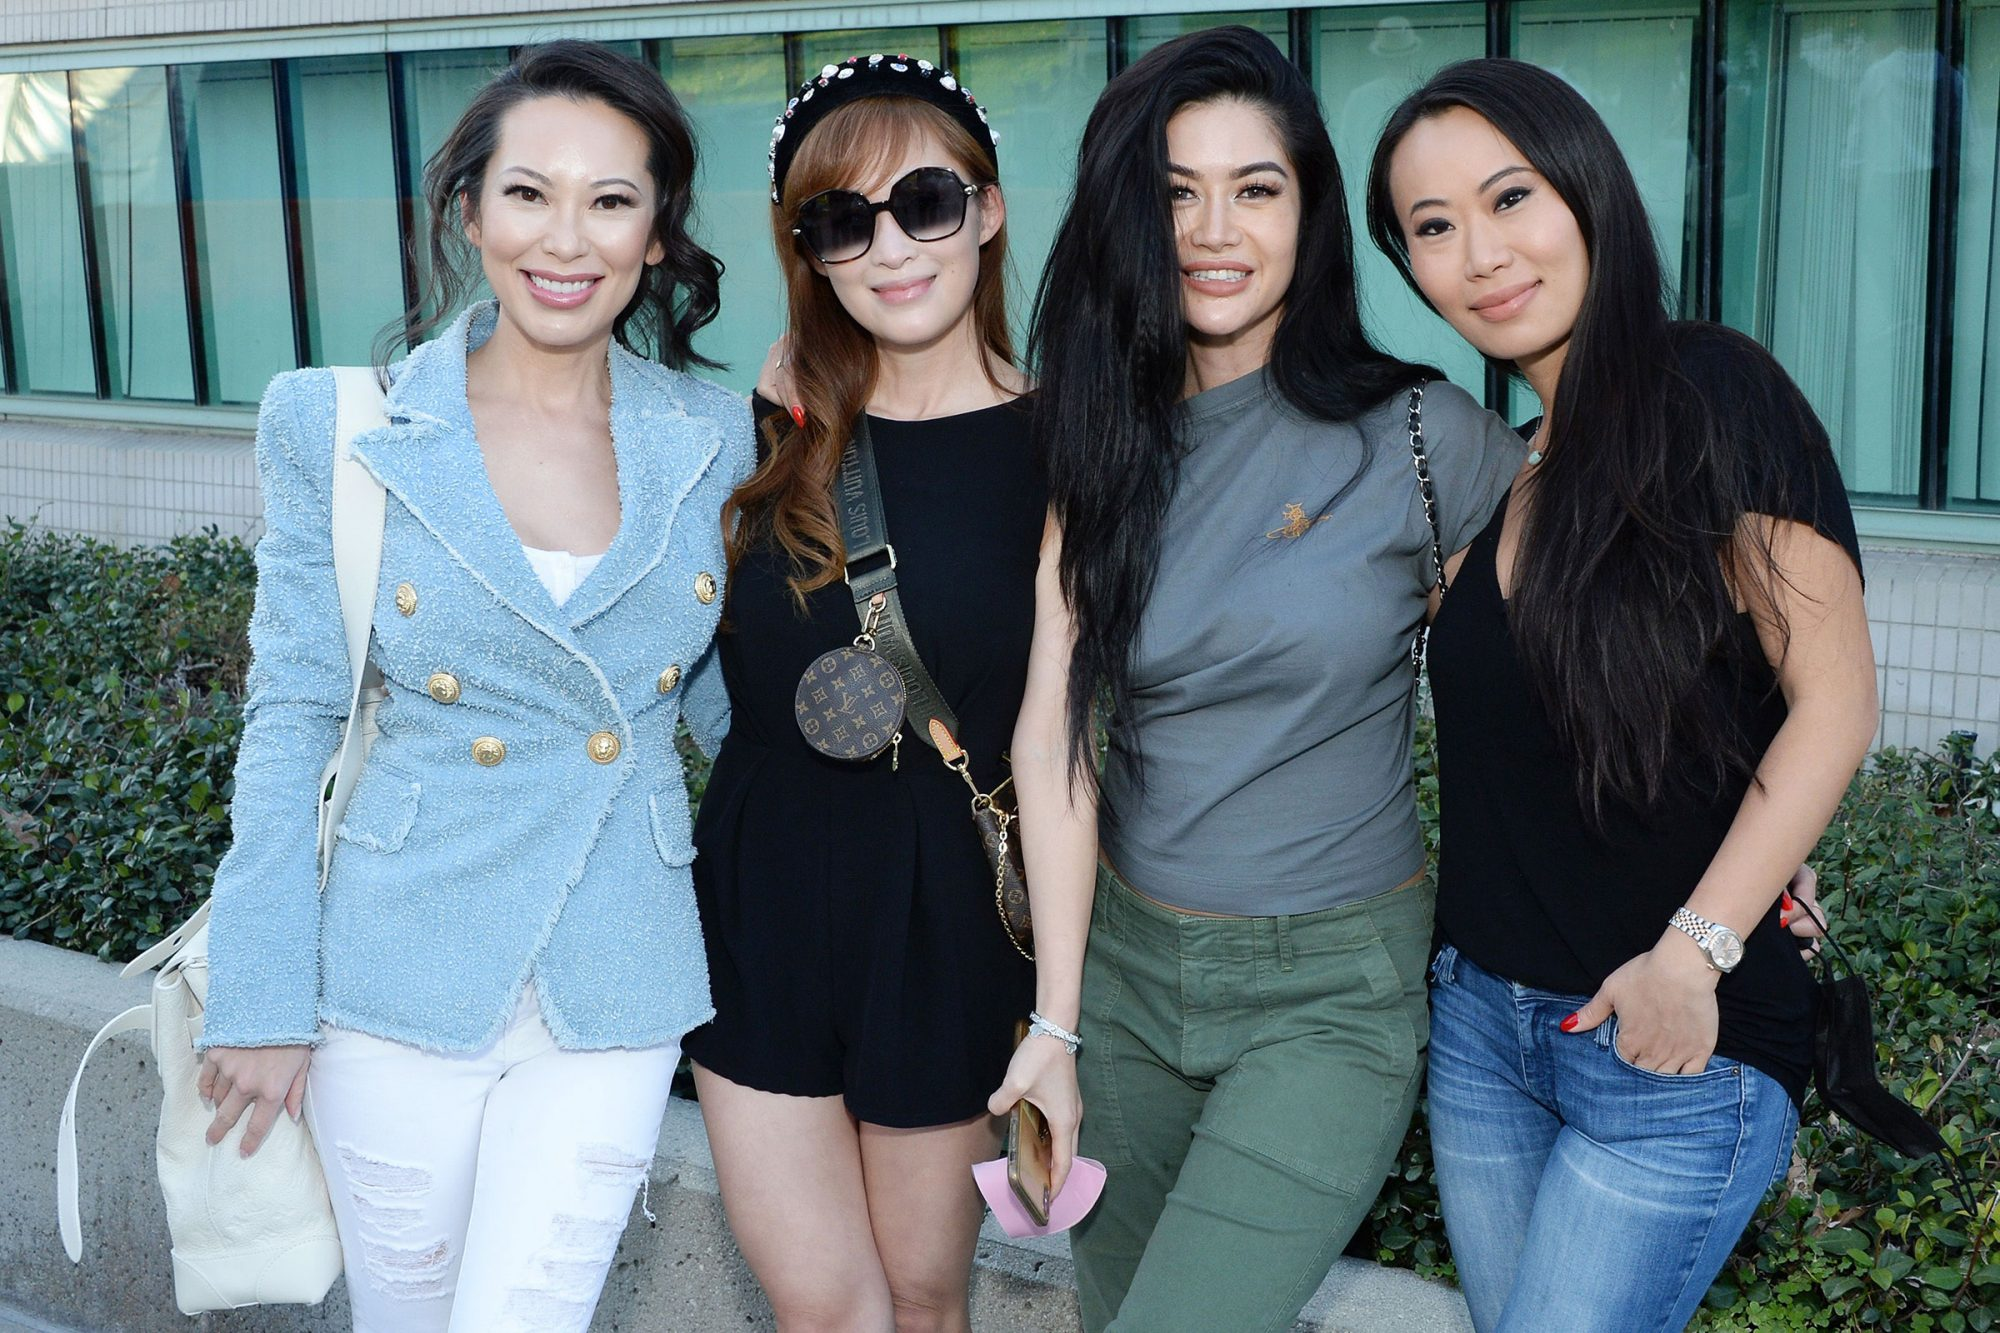 Christine Chiu, Cherie Chan, Kim Lee and Kelly Mi Li Netflix's Bling Empire donates to frontline medical workers, Baldwin Park, California